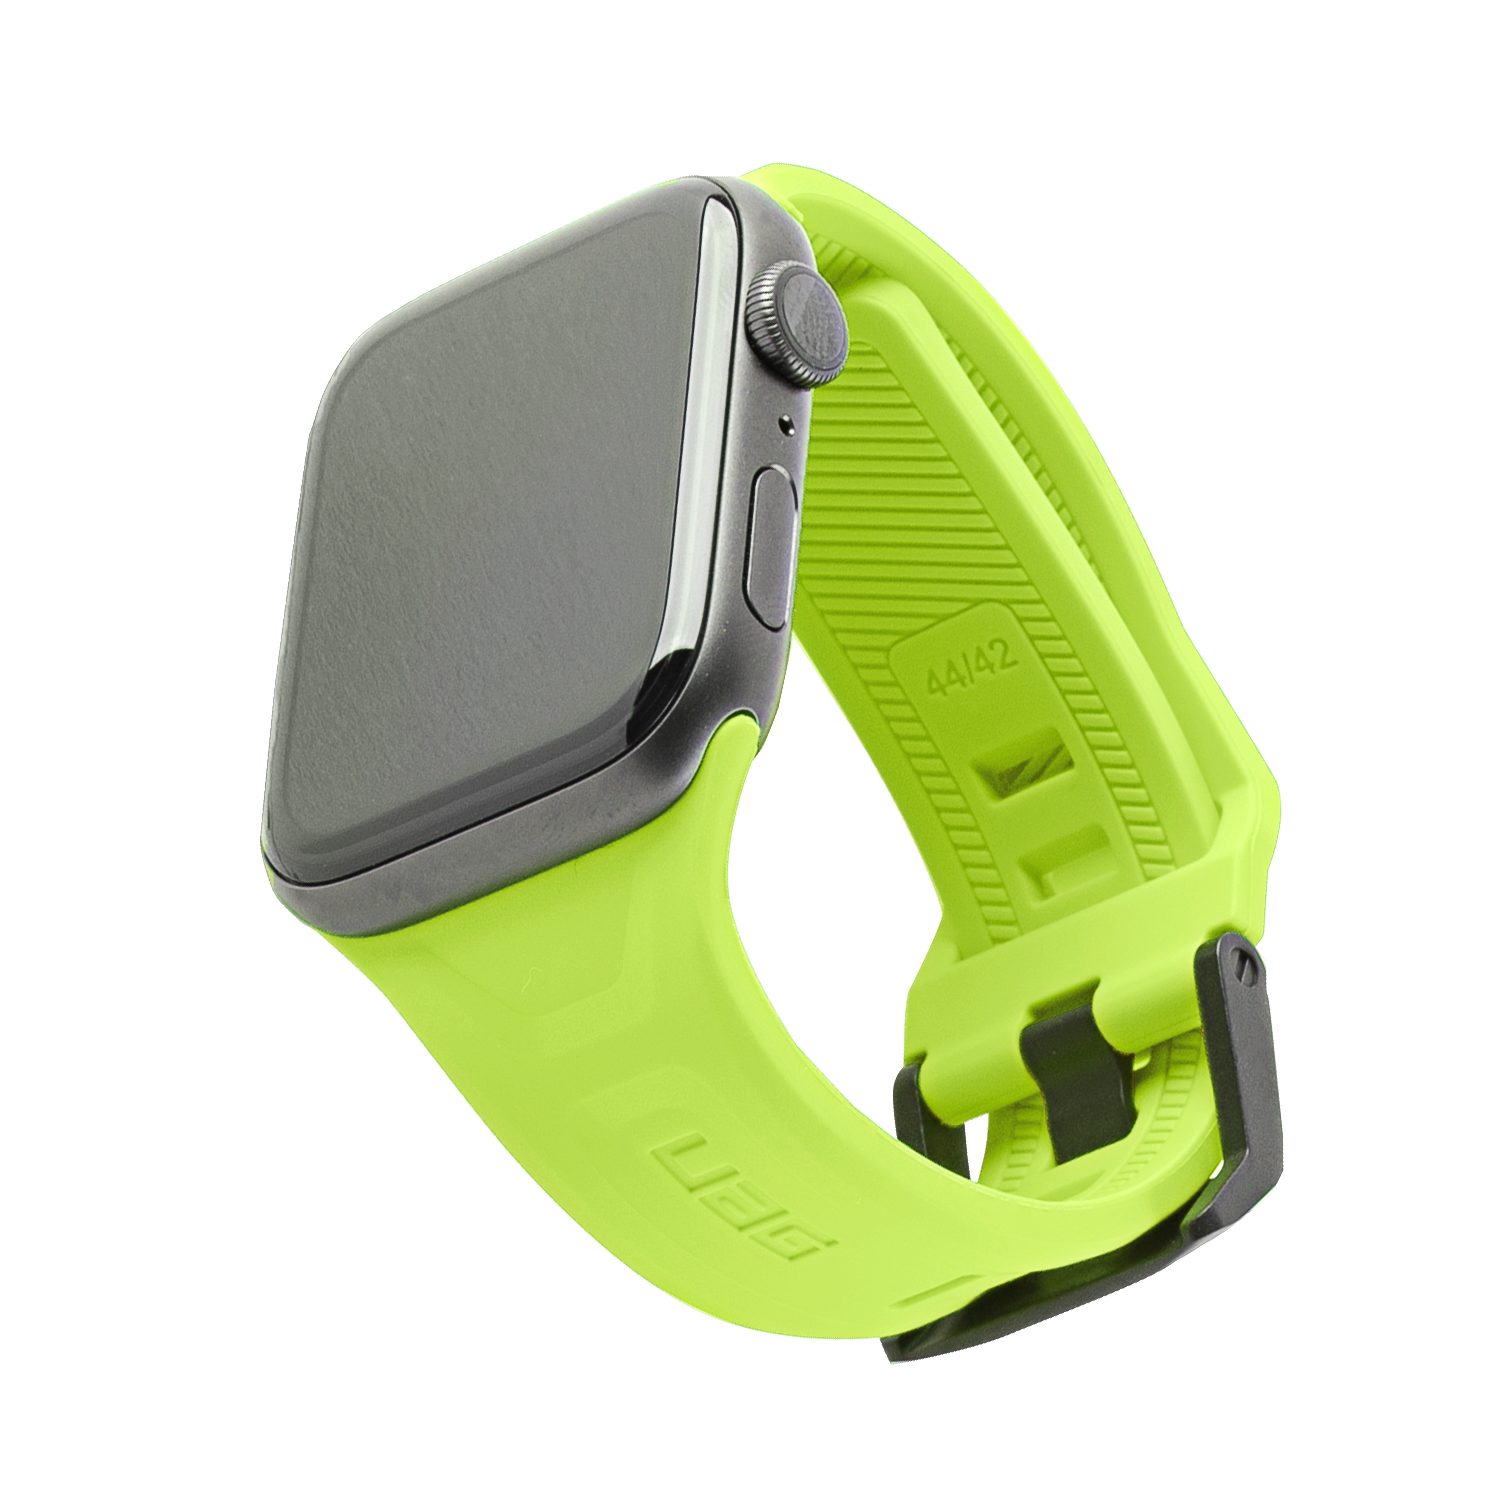 UAG Scout Silicone Watch Strap for Apple Watch 42mm / 44mm - Lime Green